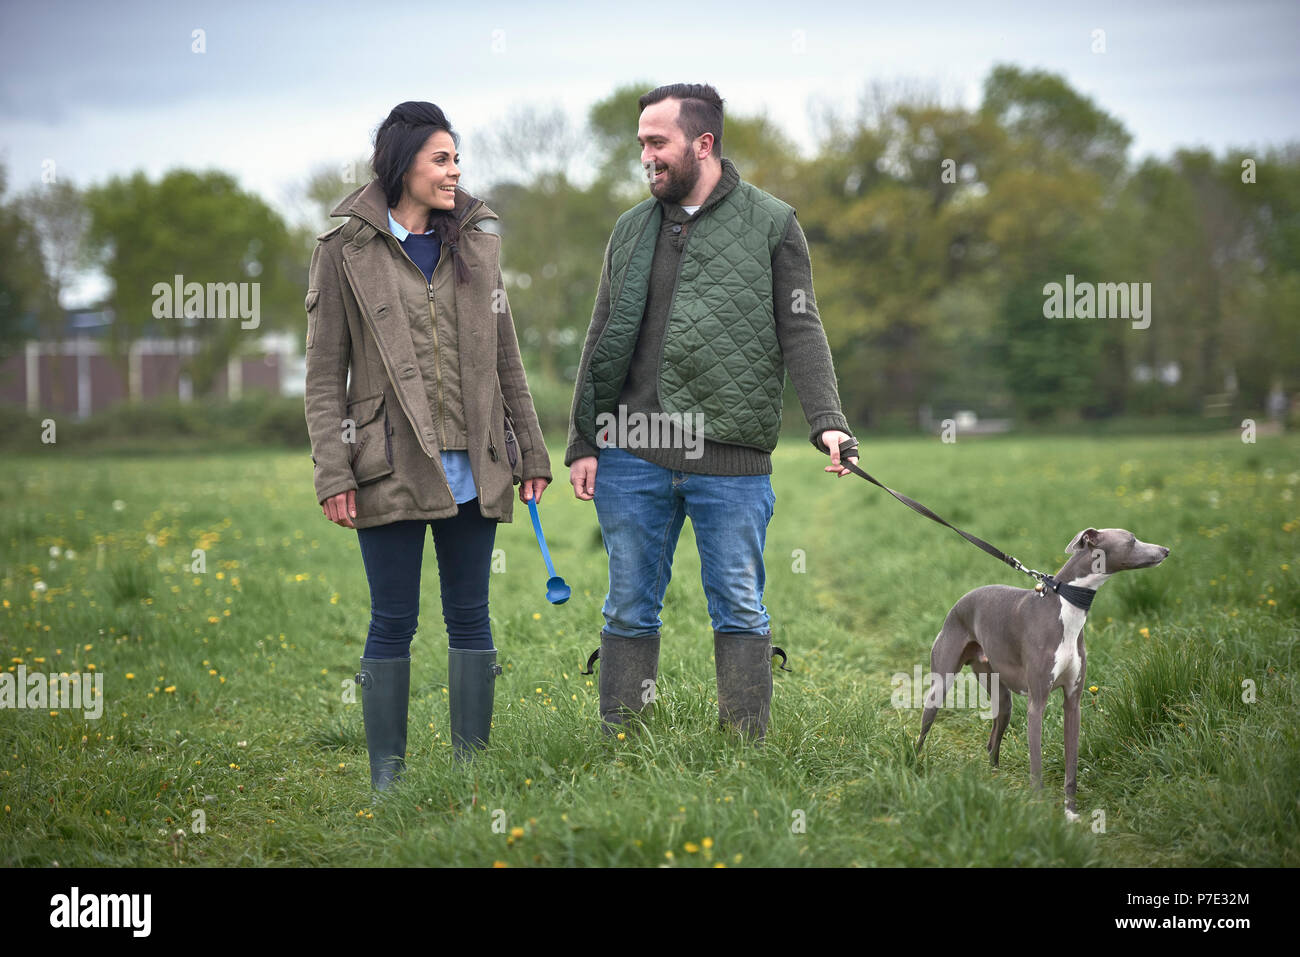 Woman and man walking dog in field - Stock Image